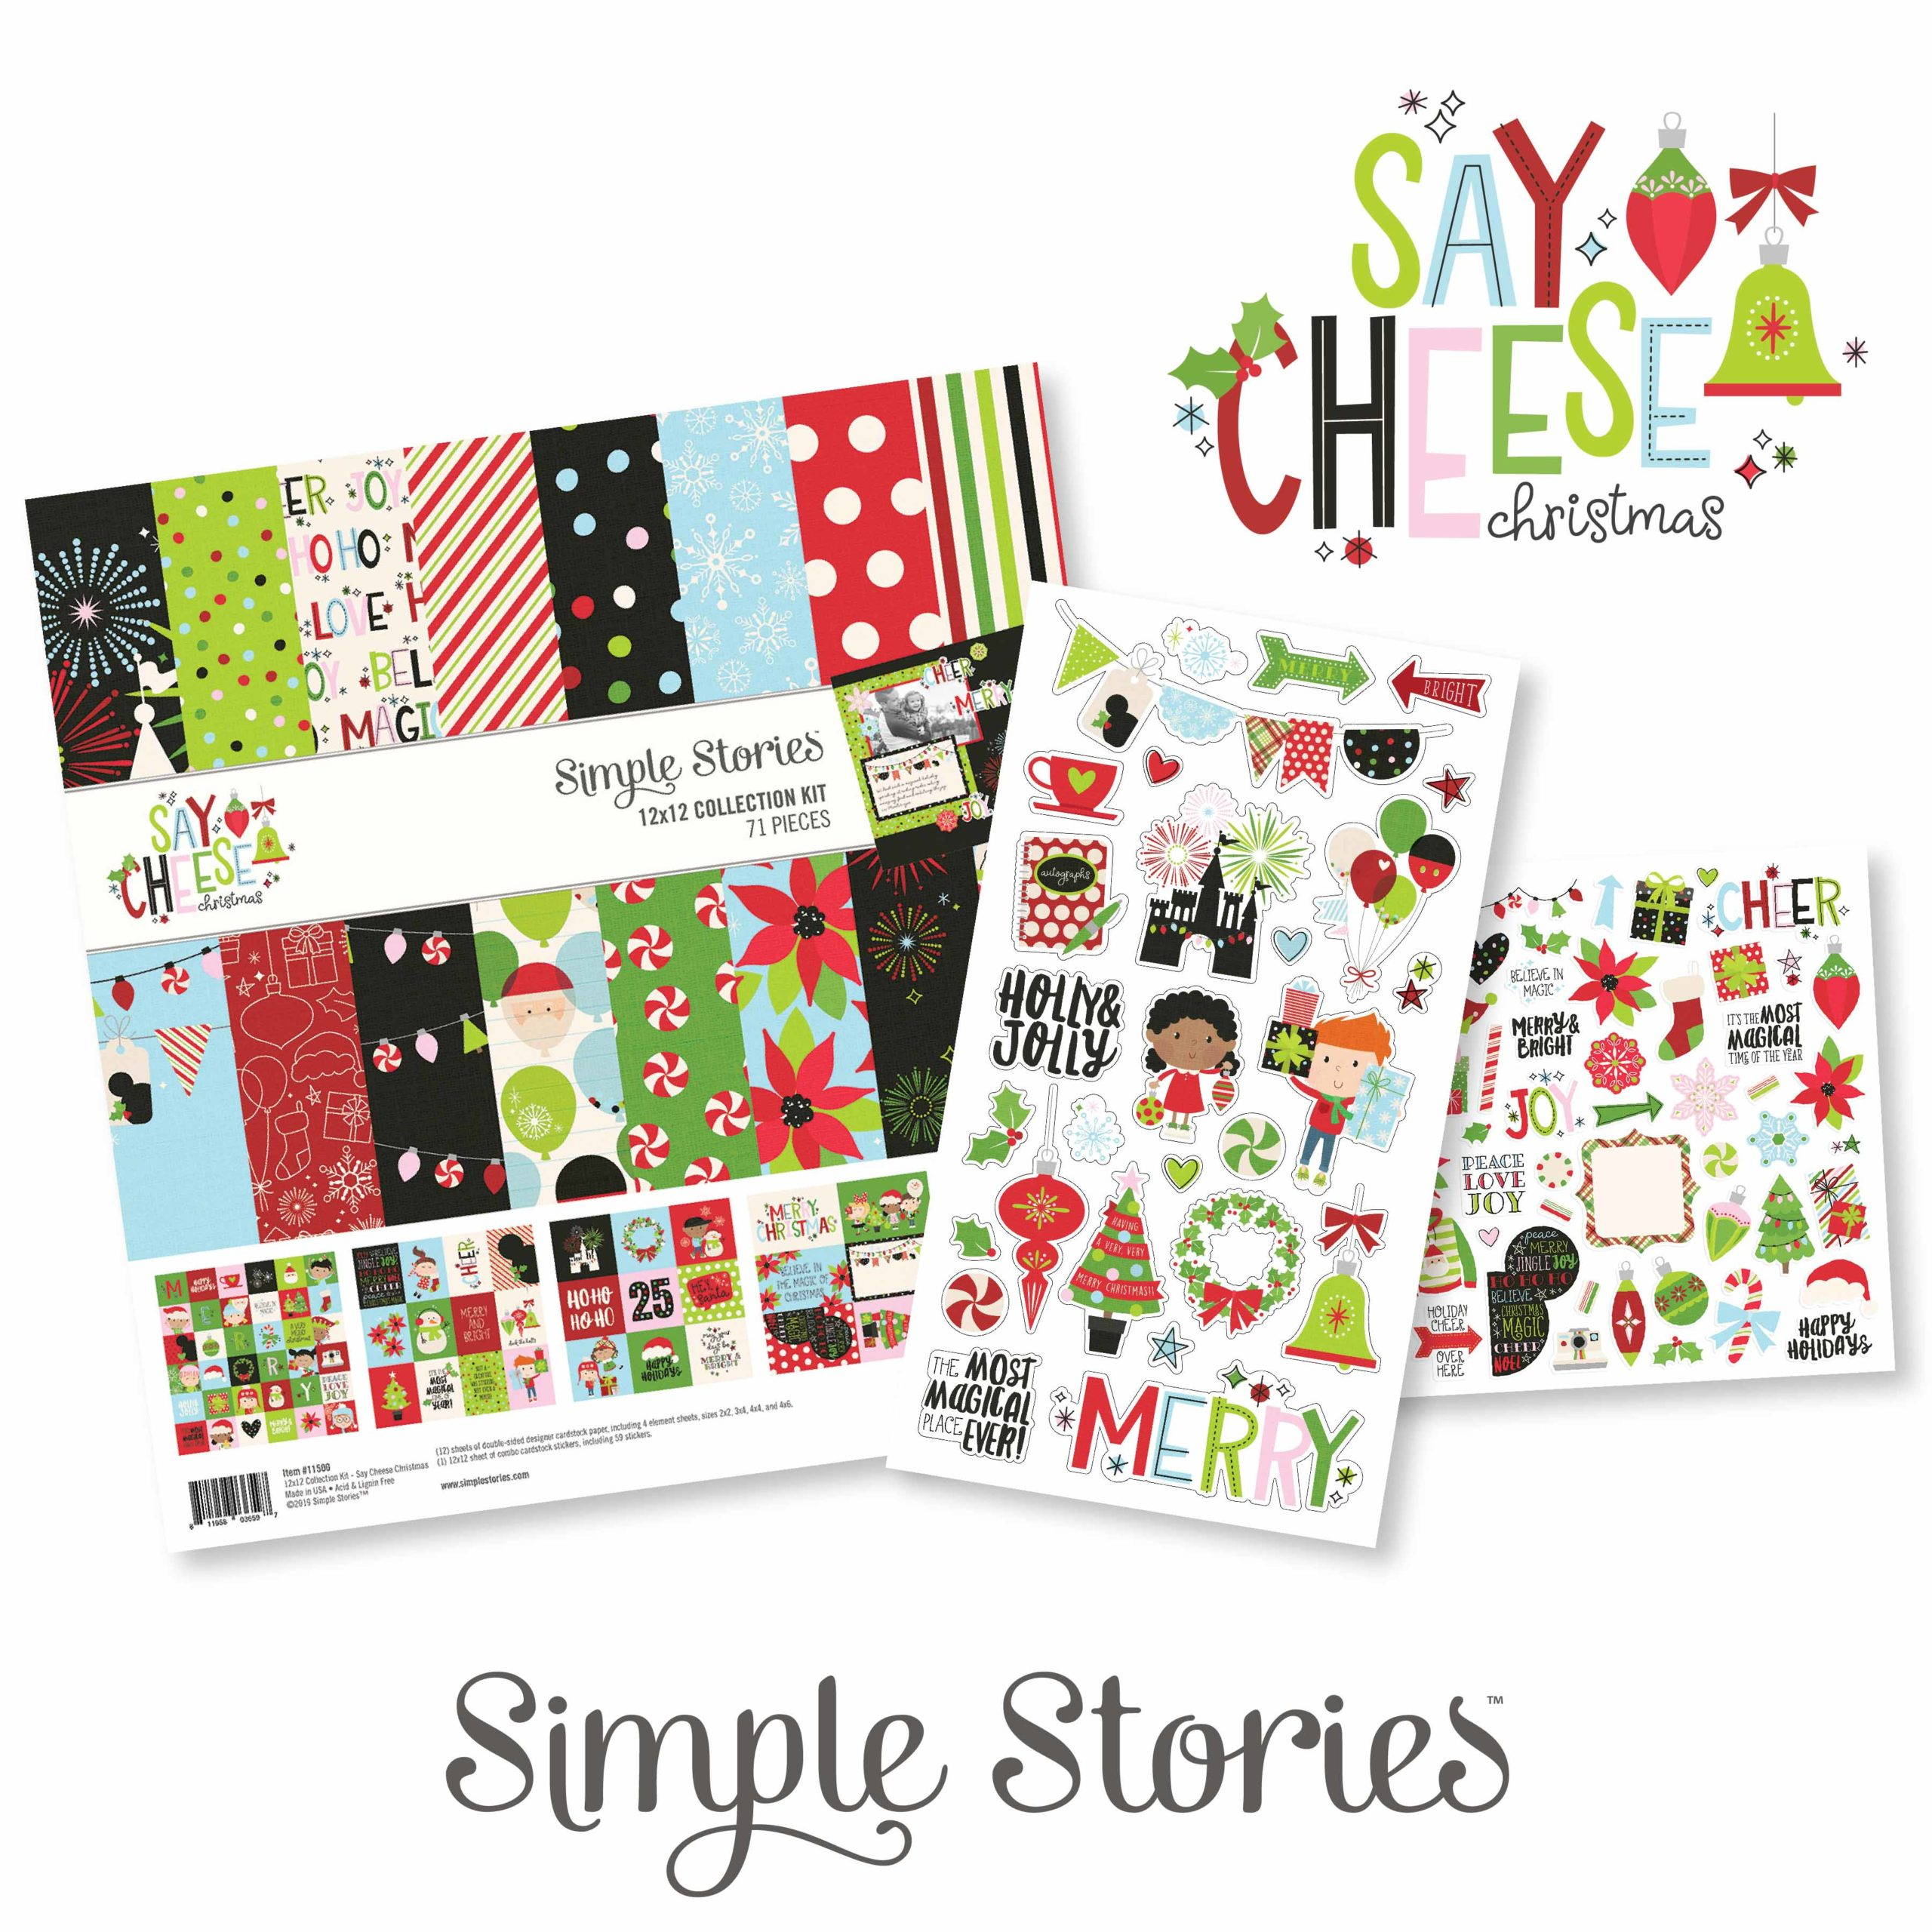 Simple Stories prize pack